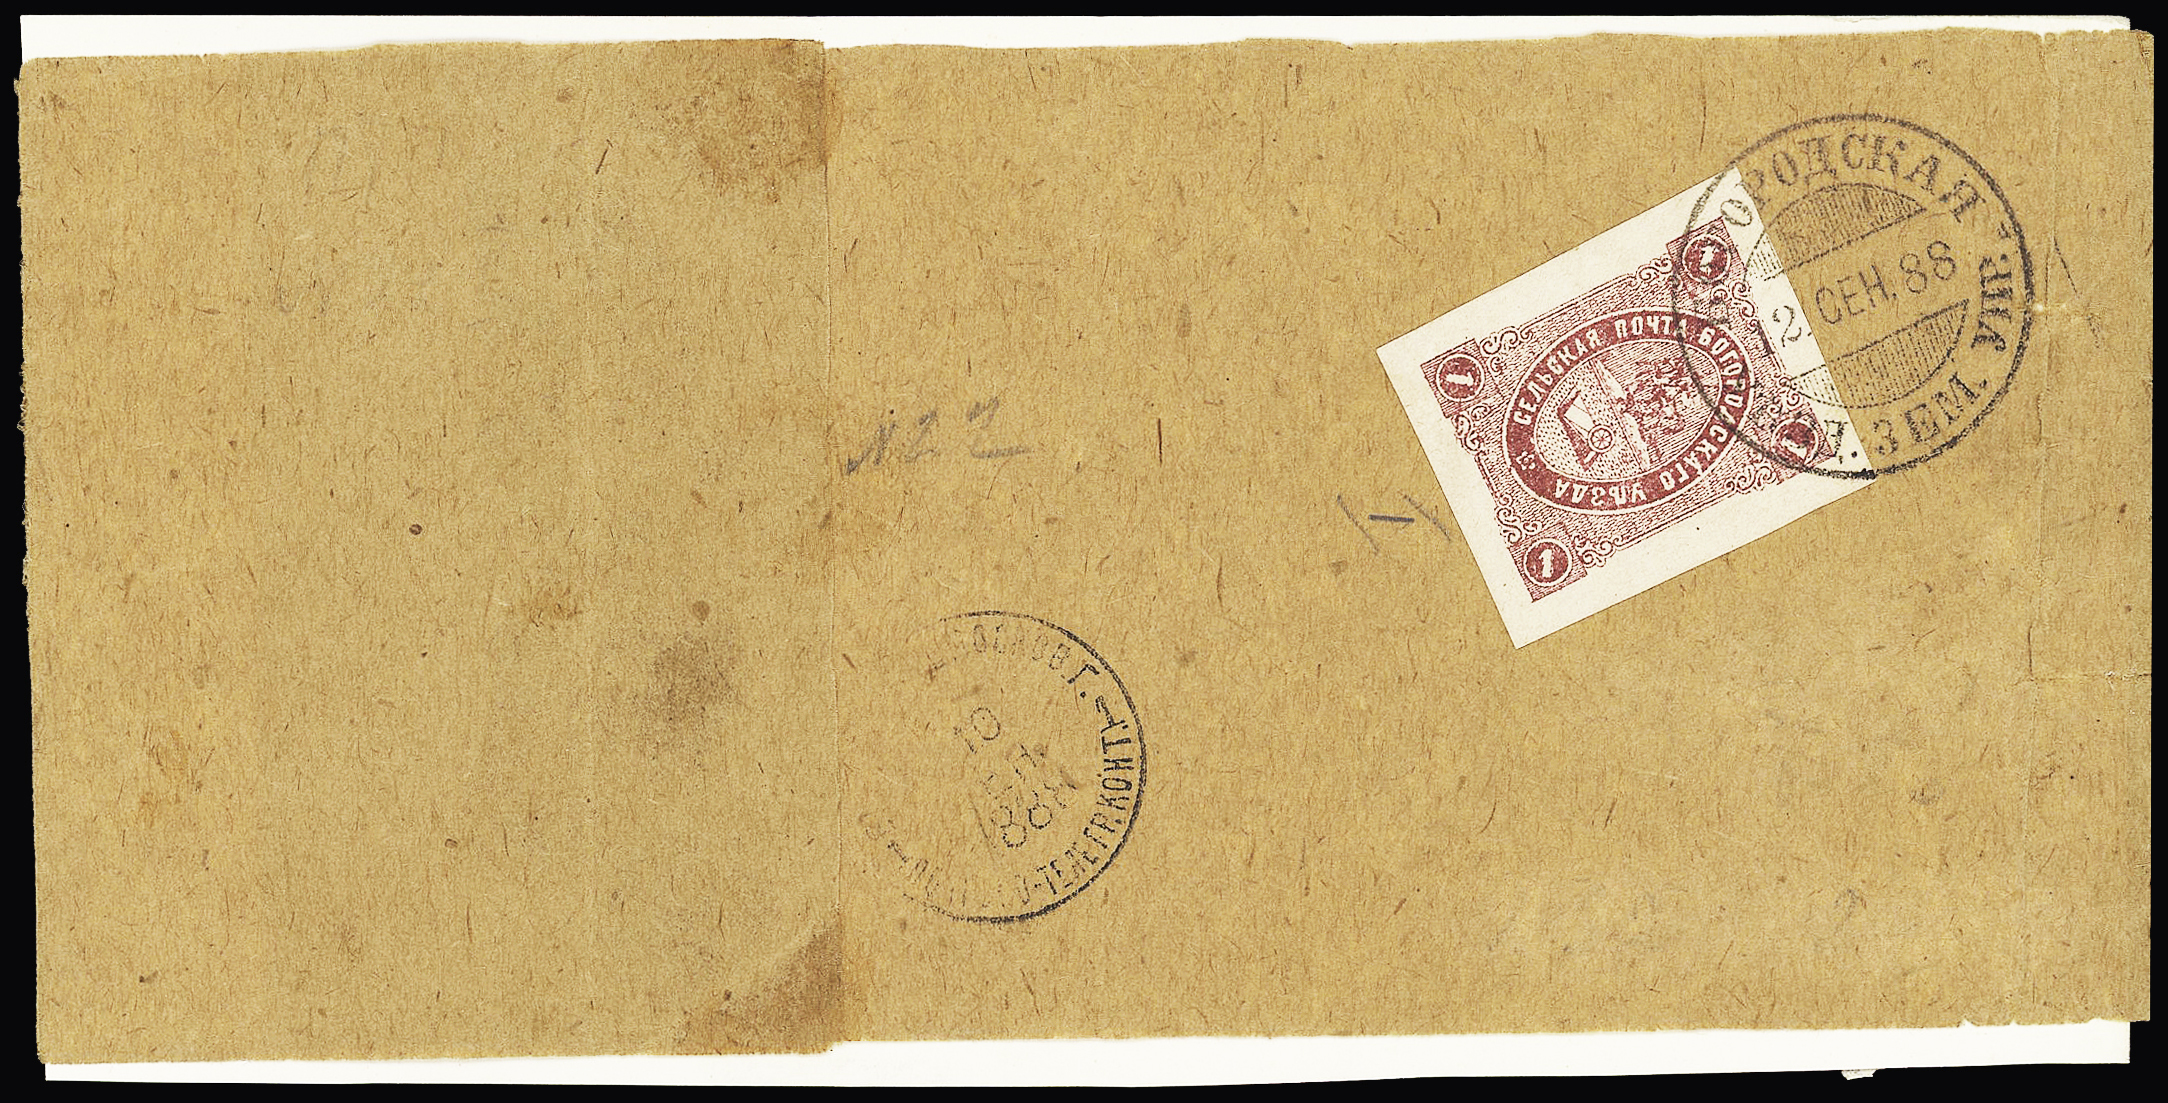 Lot 415 - Eastern Europe » RUSSIA - ZEMSTVOS » Bogorodsk (Moscow Government)  -  Le Timbre Classique SA SALE ON OFFERS N ° 37 PARIS